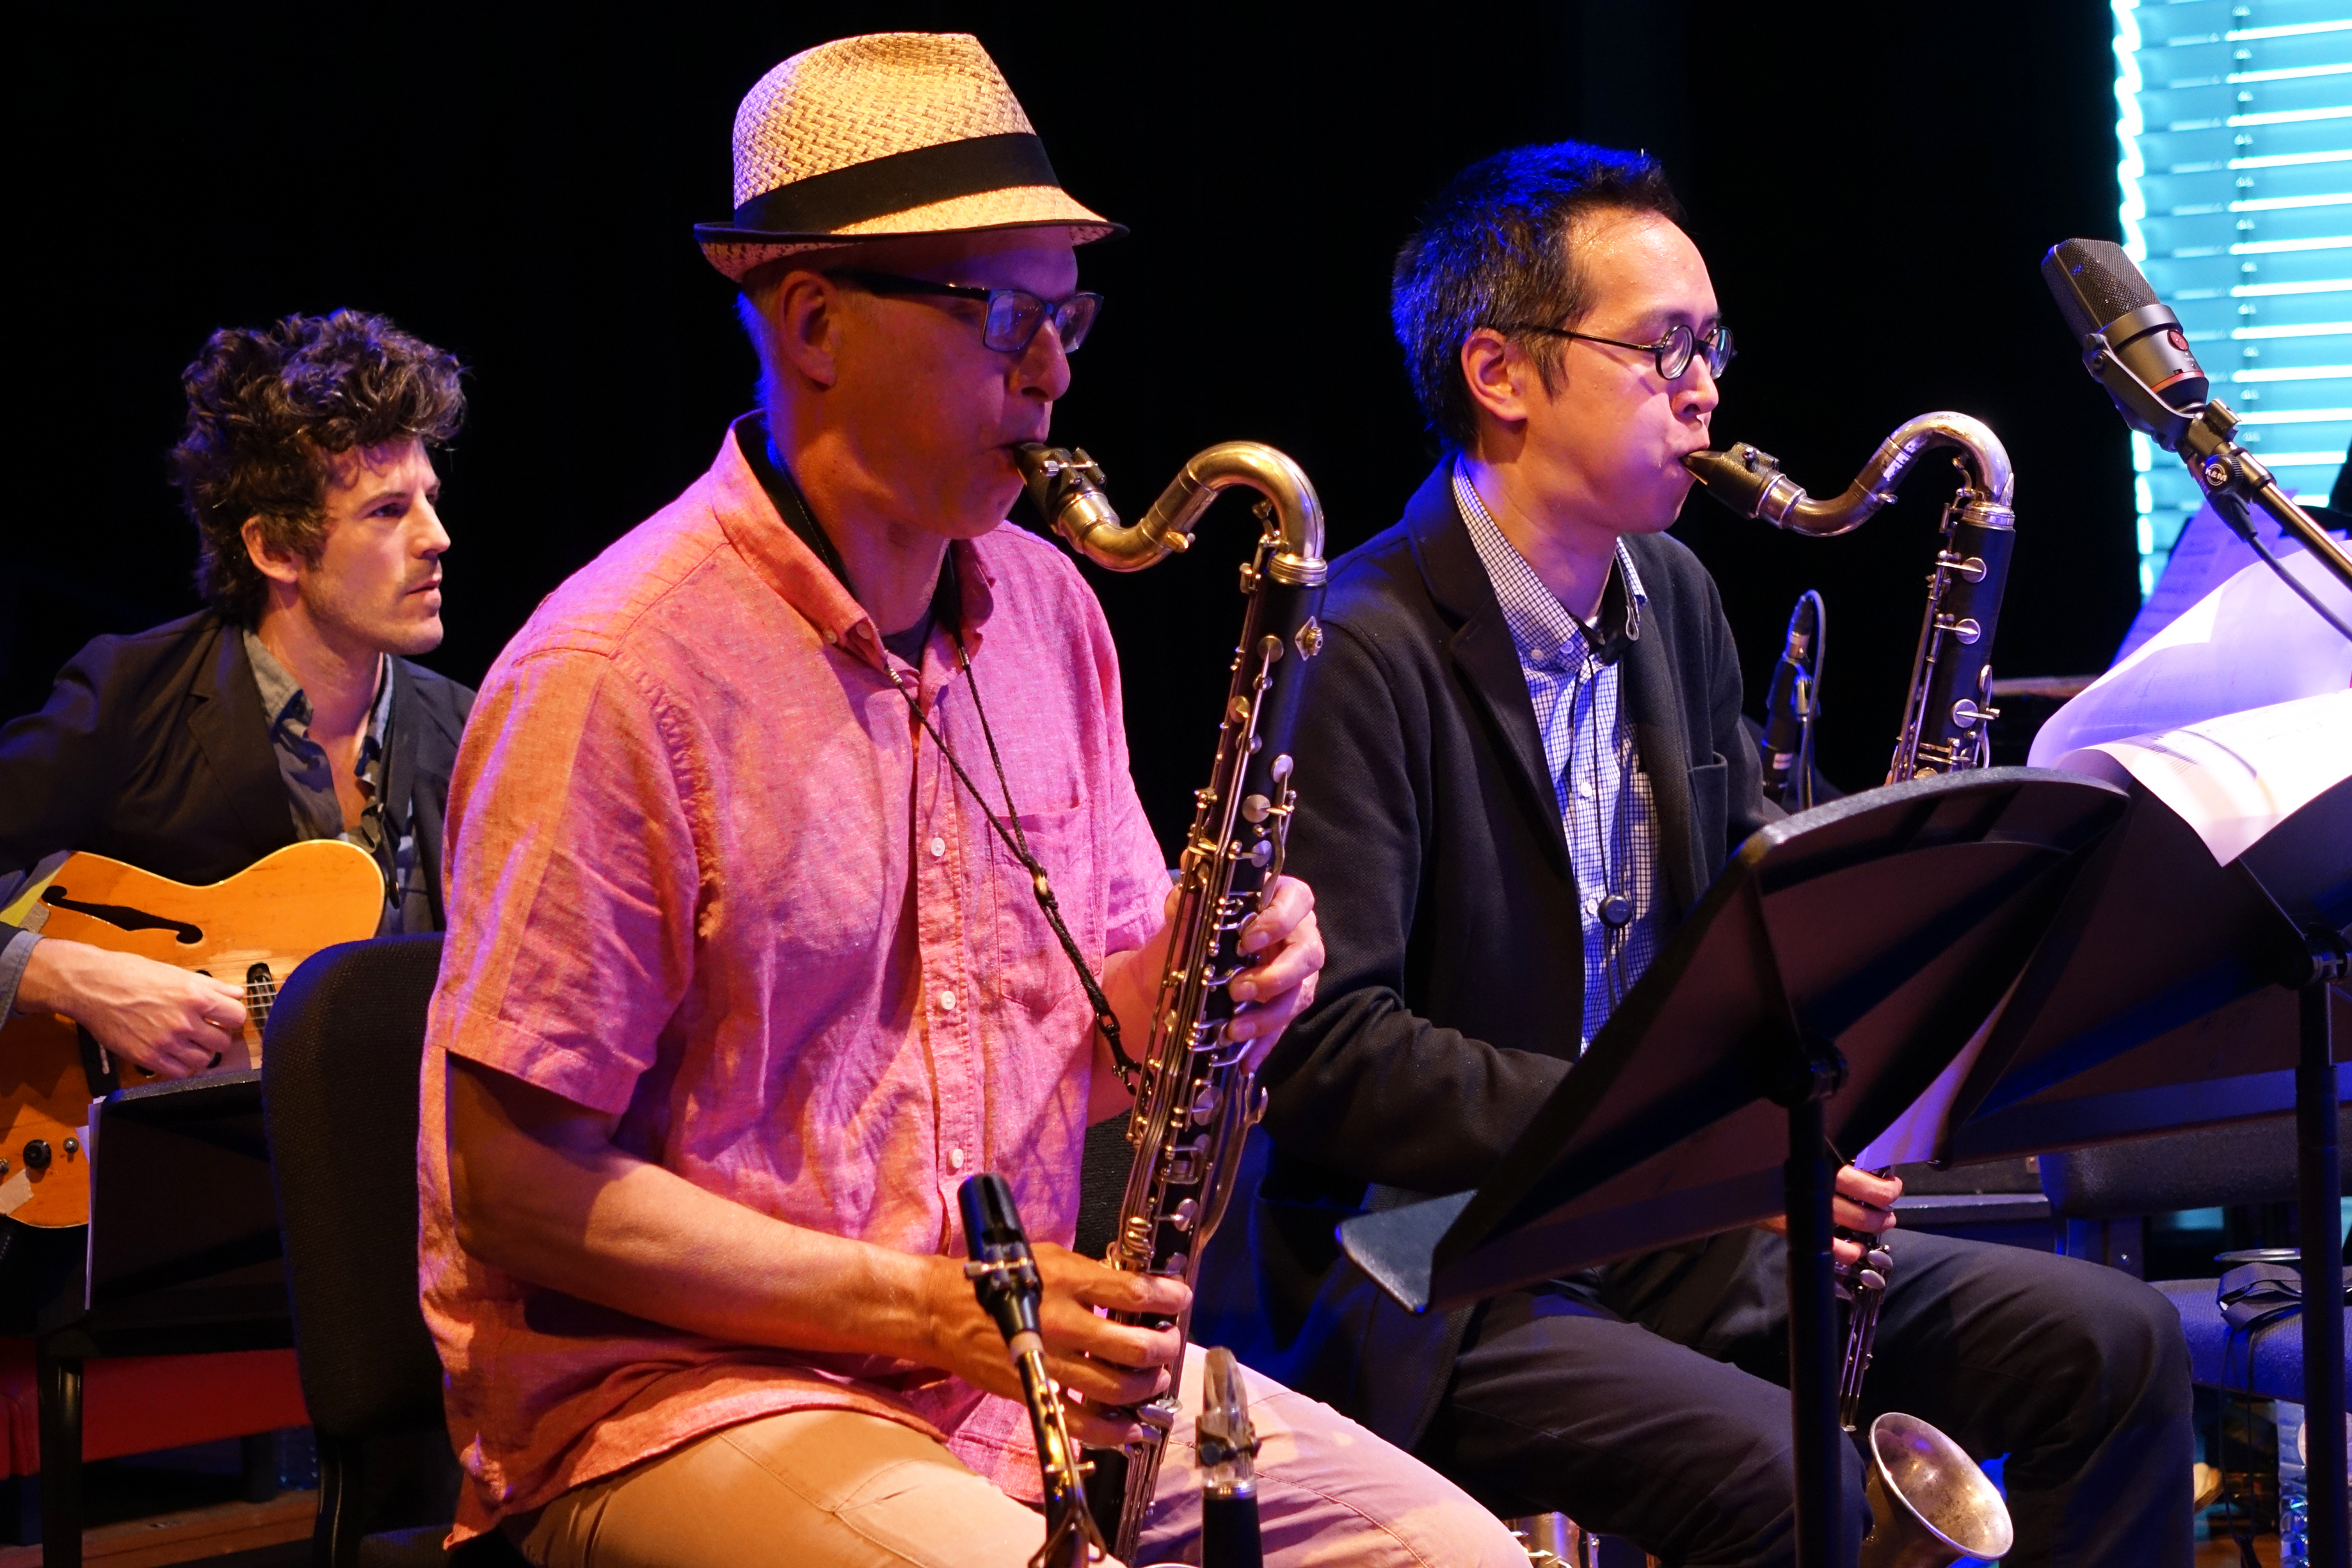 Brandon Seabrook, Michael Moore, and James Fei at Doek Festival 2015